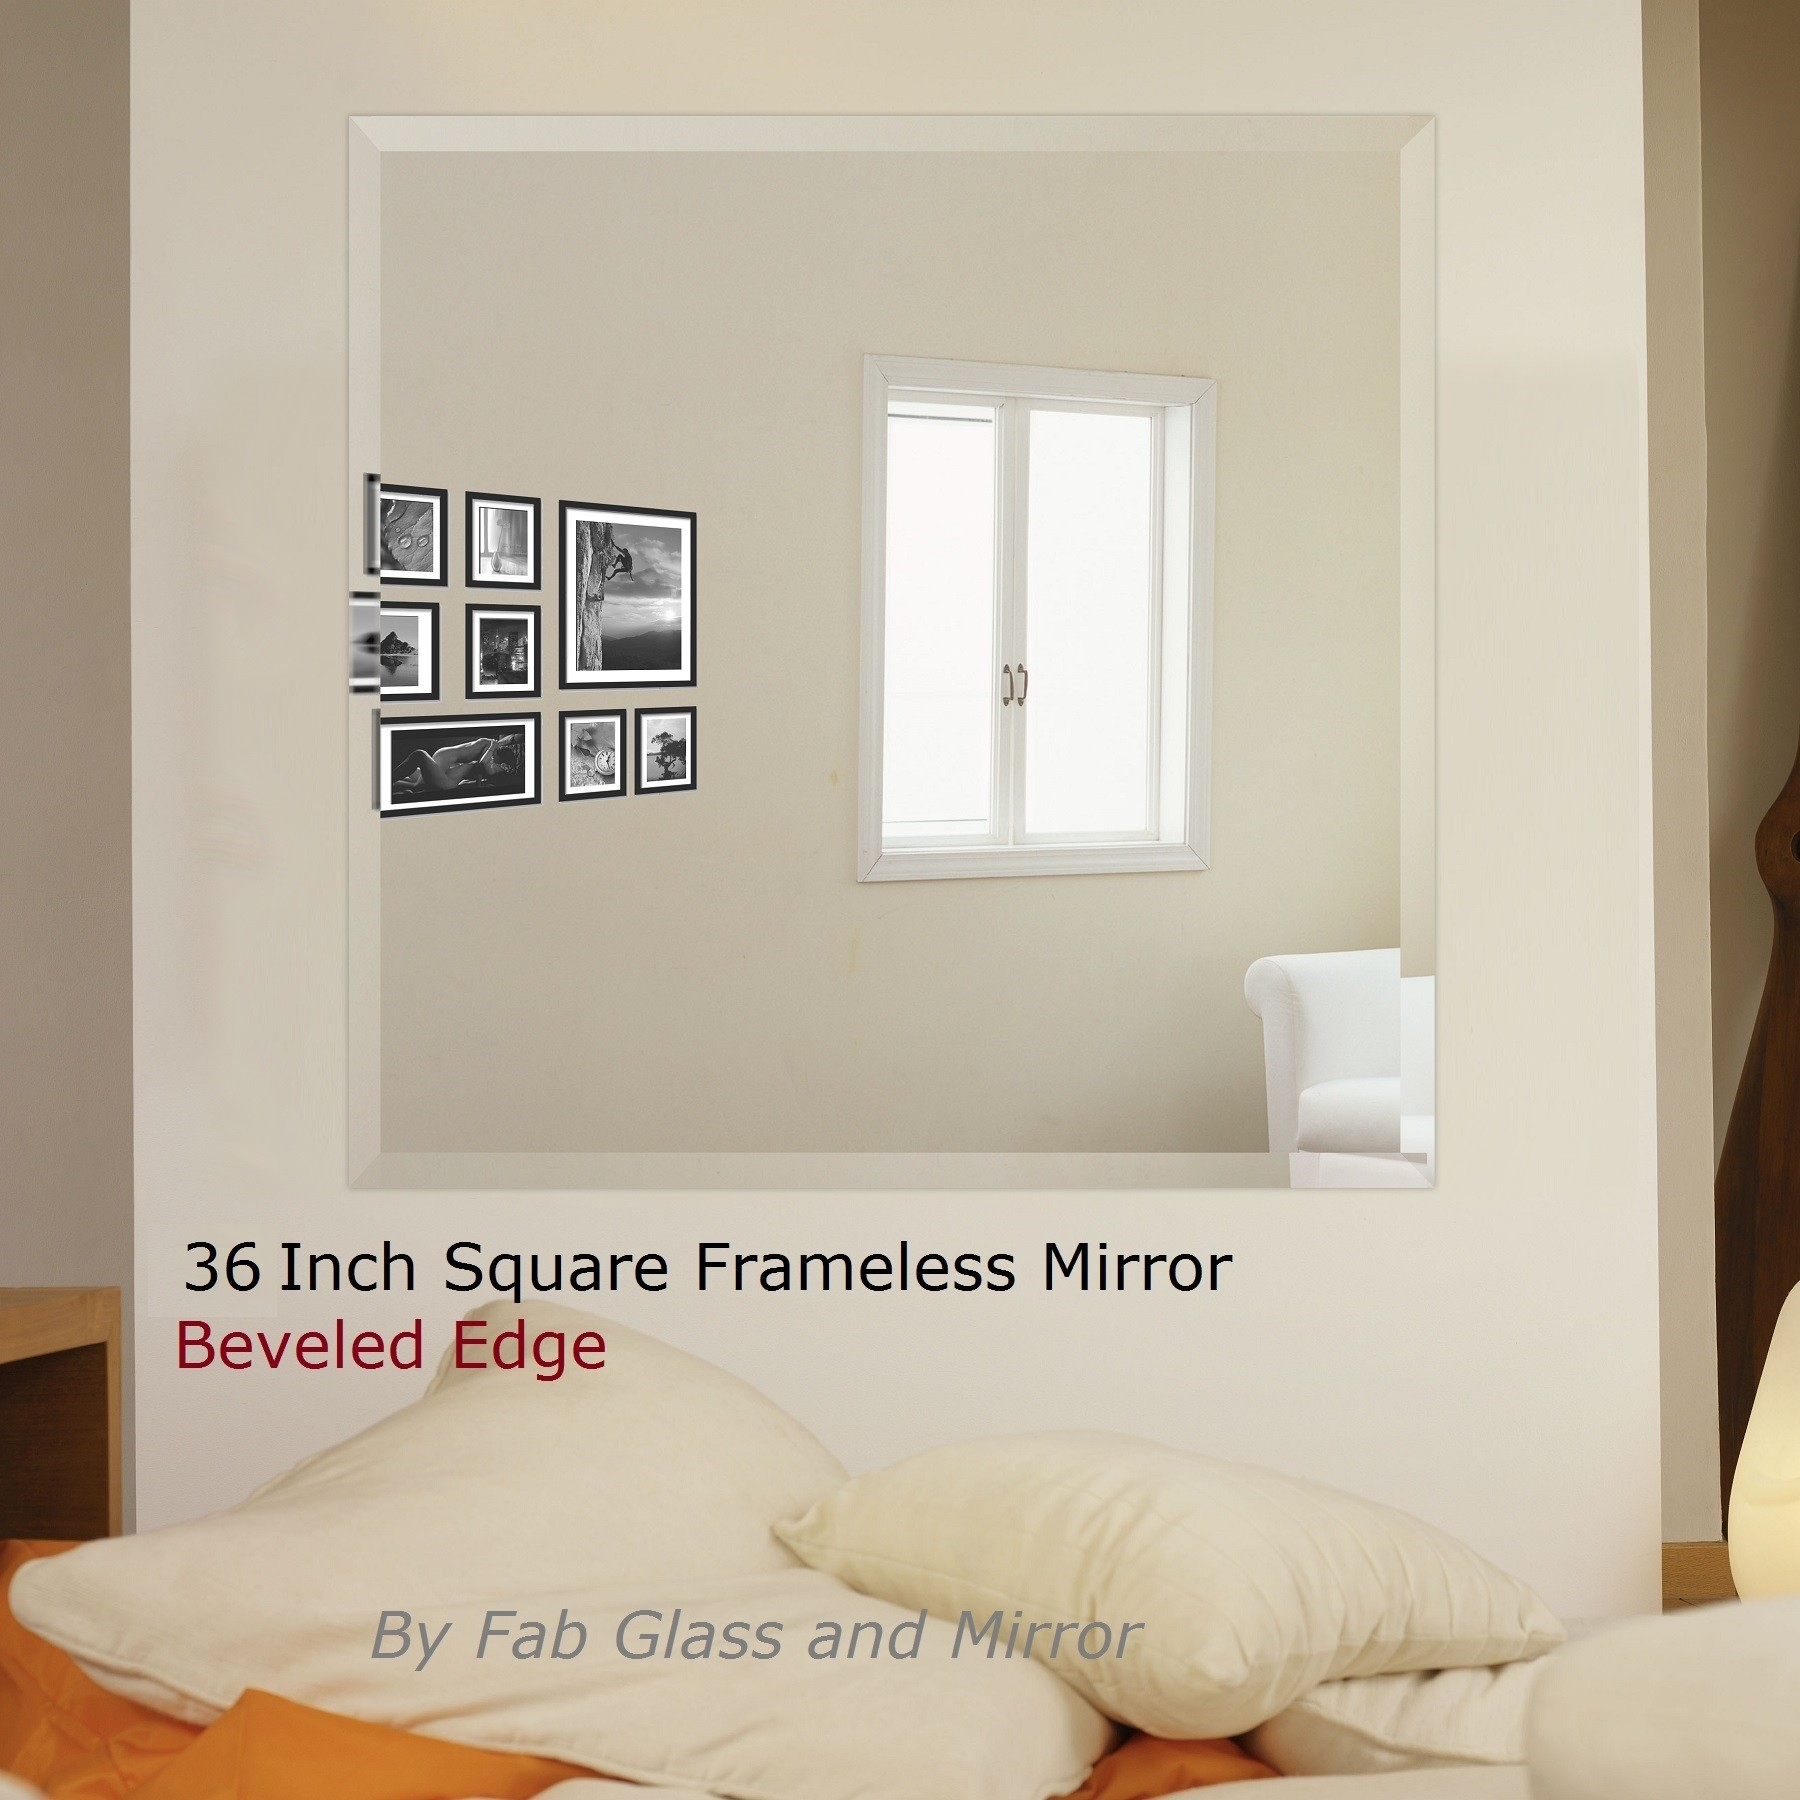 Wholesale wall mirrors are too good option for bathrooms square wall mirrors amipublicfo Choice Image